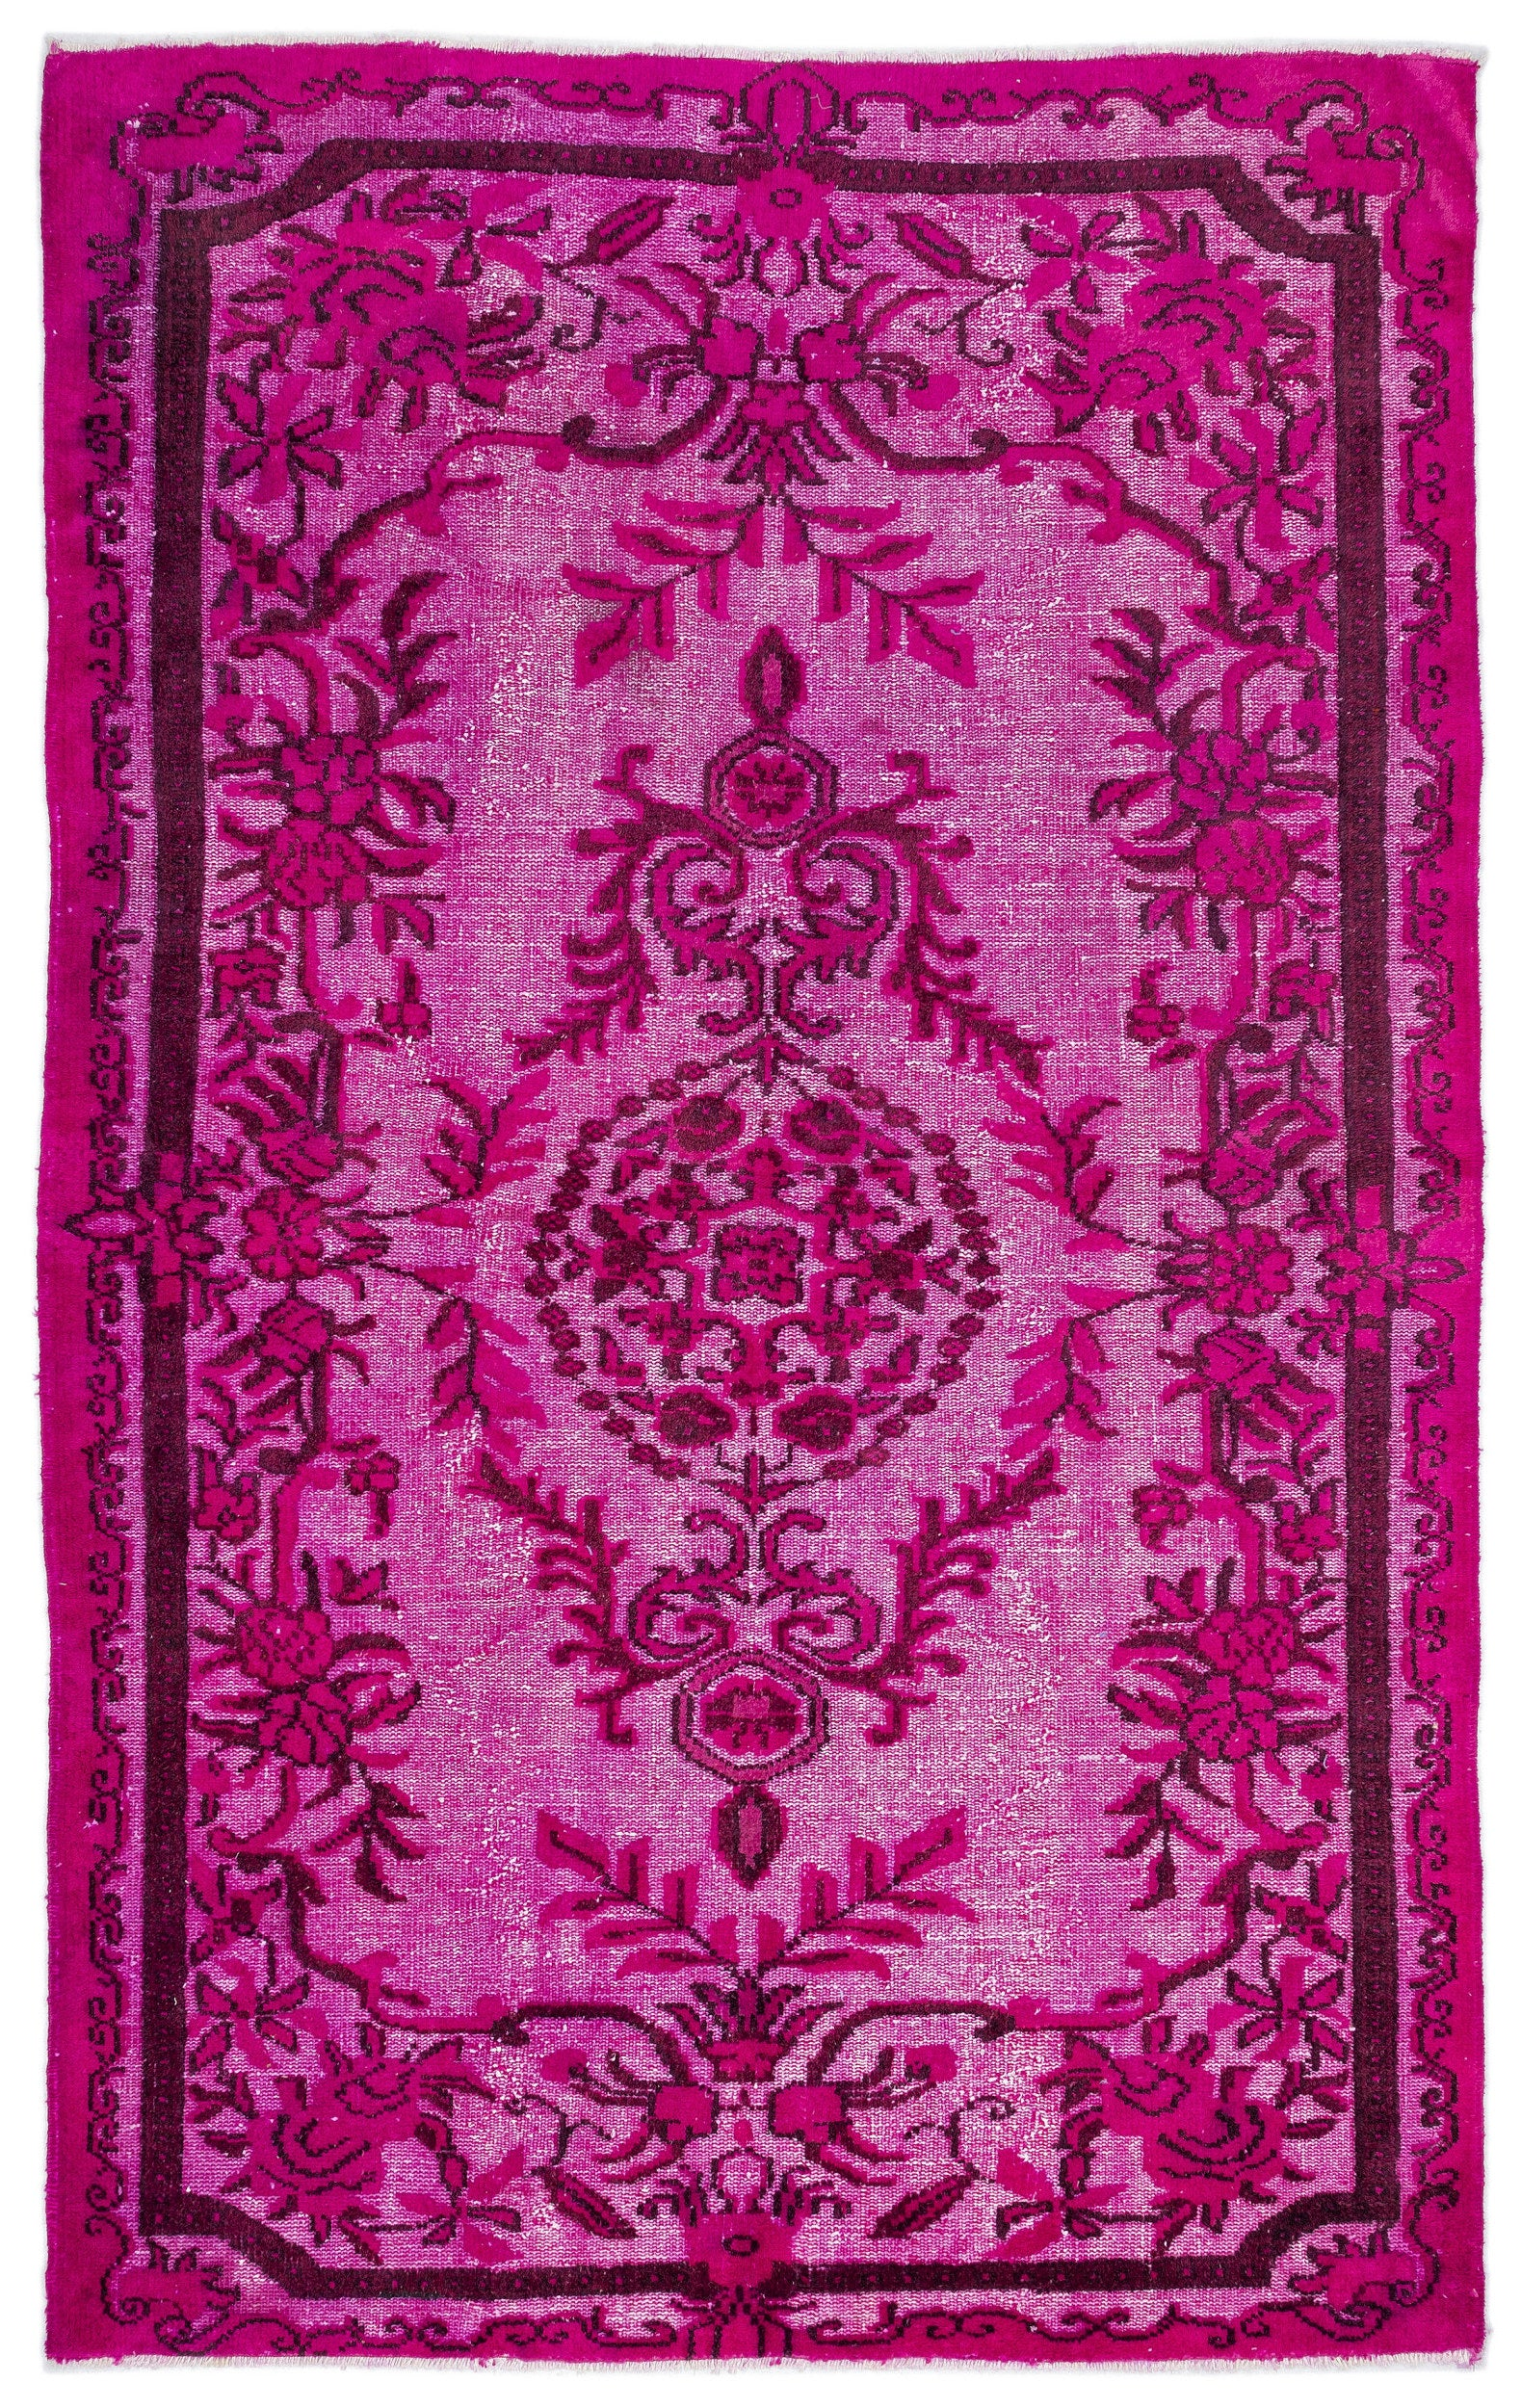 Pink Over Dyed Carved Rug 5'9'' x 8'12'' ft 175 x 274 cm